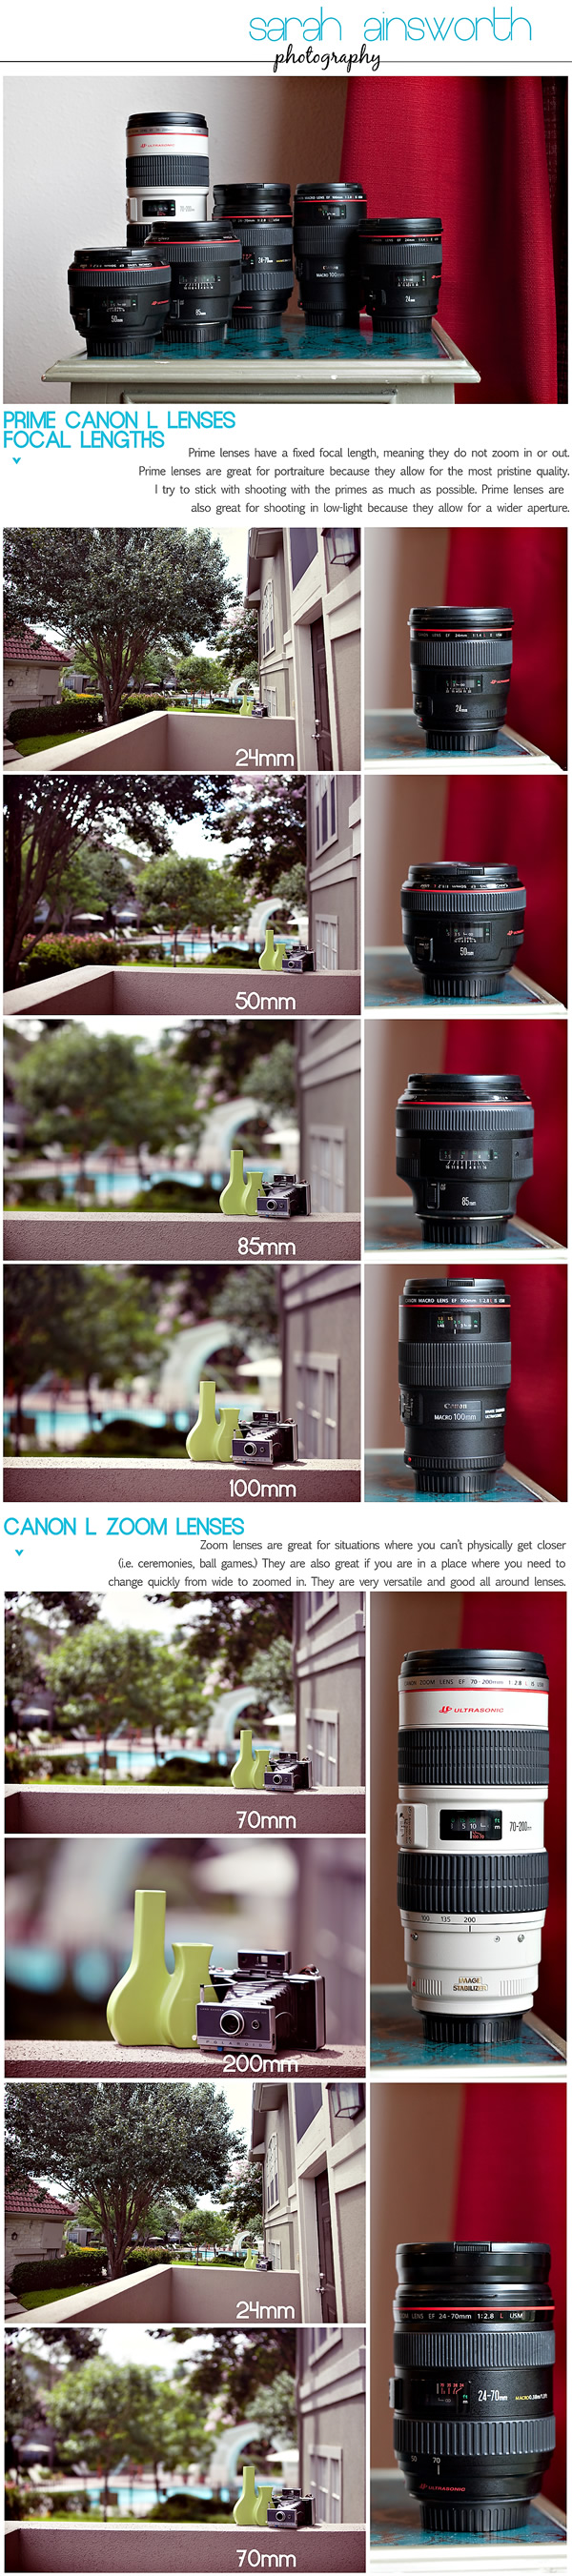 Prim Canon Lenses - Focal Lengths